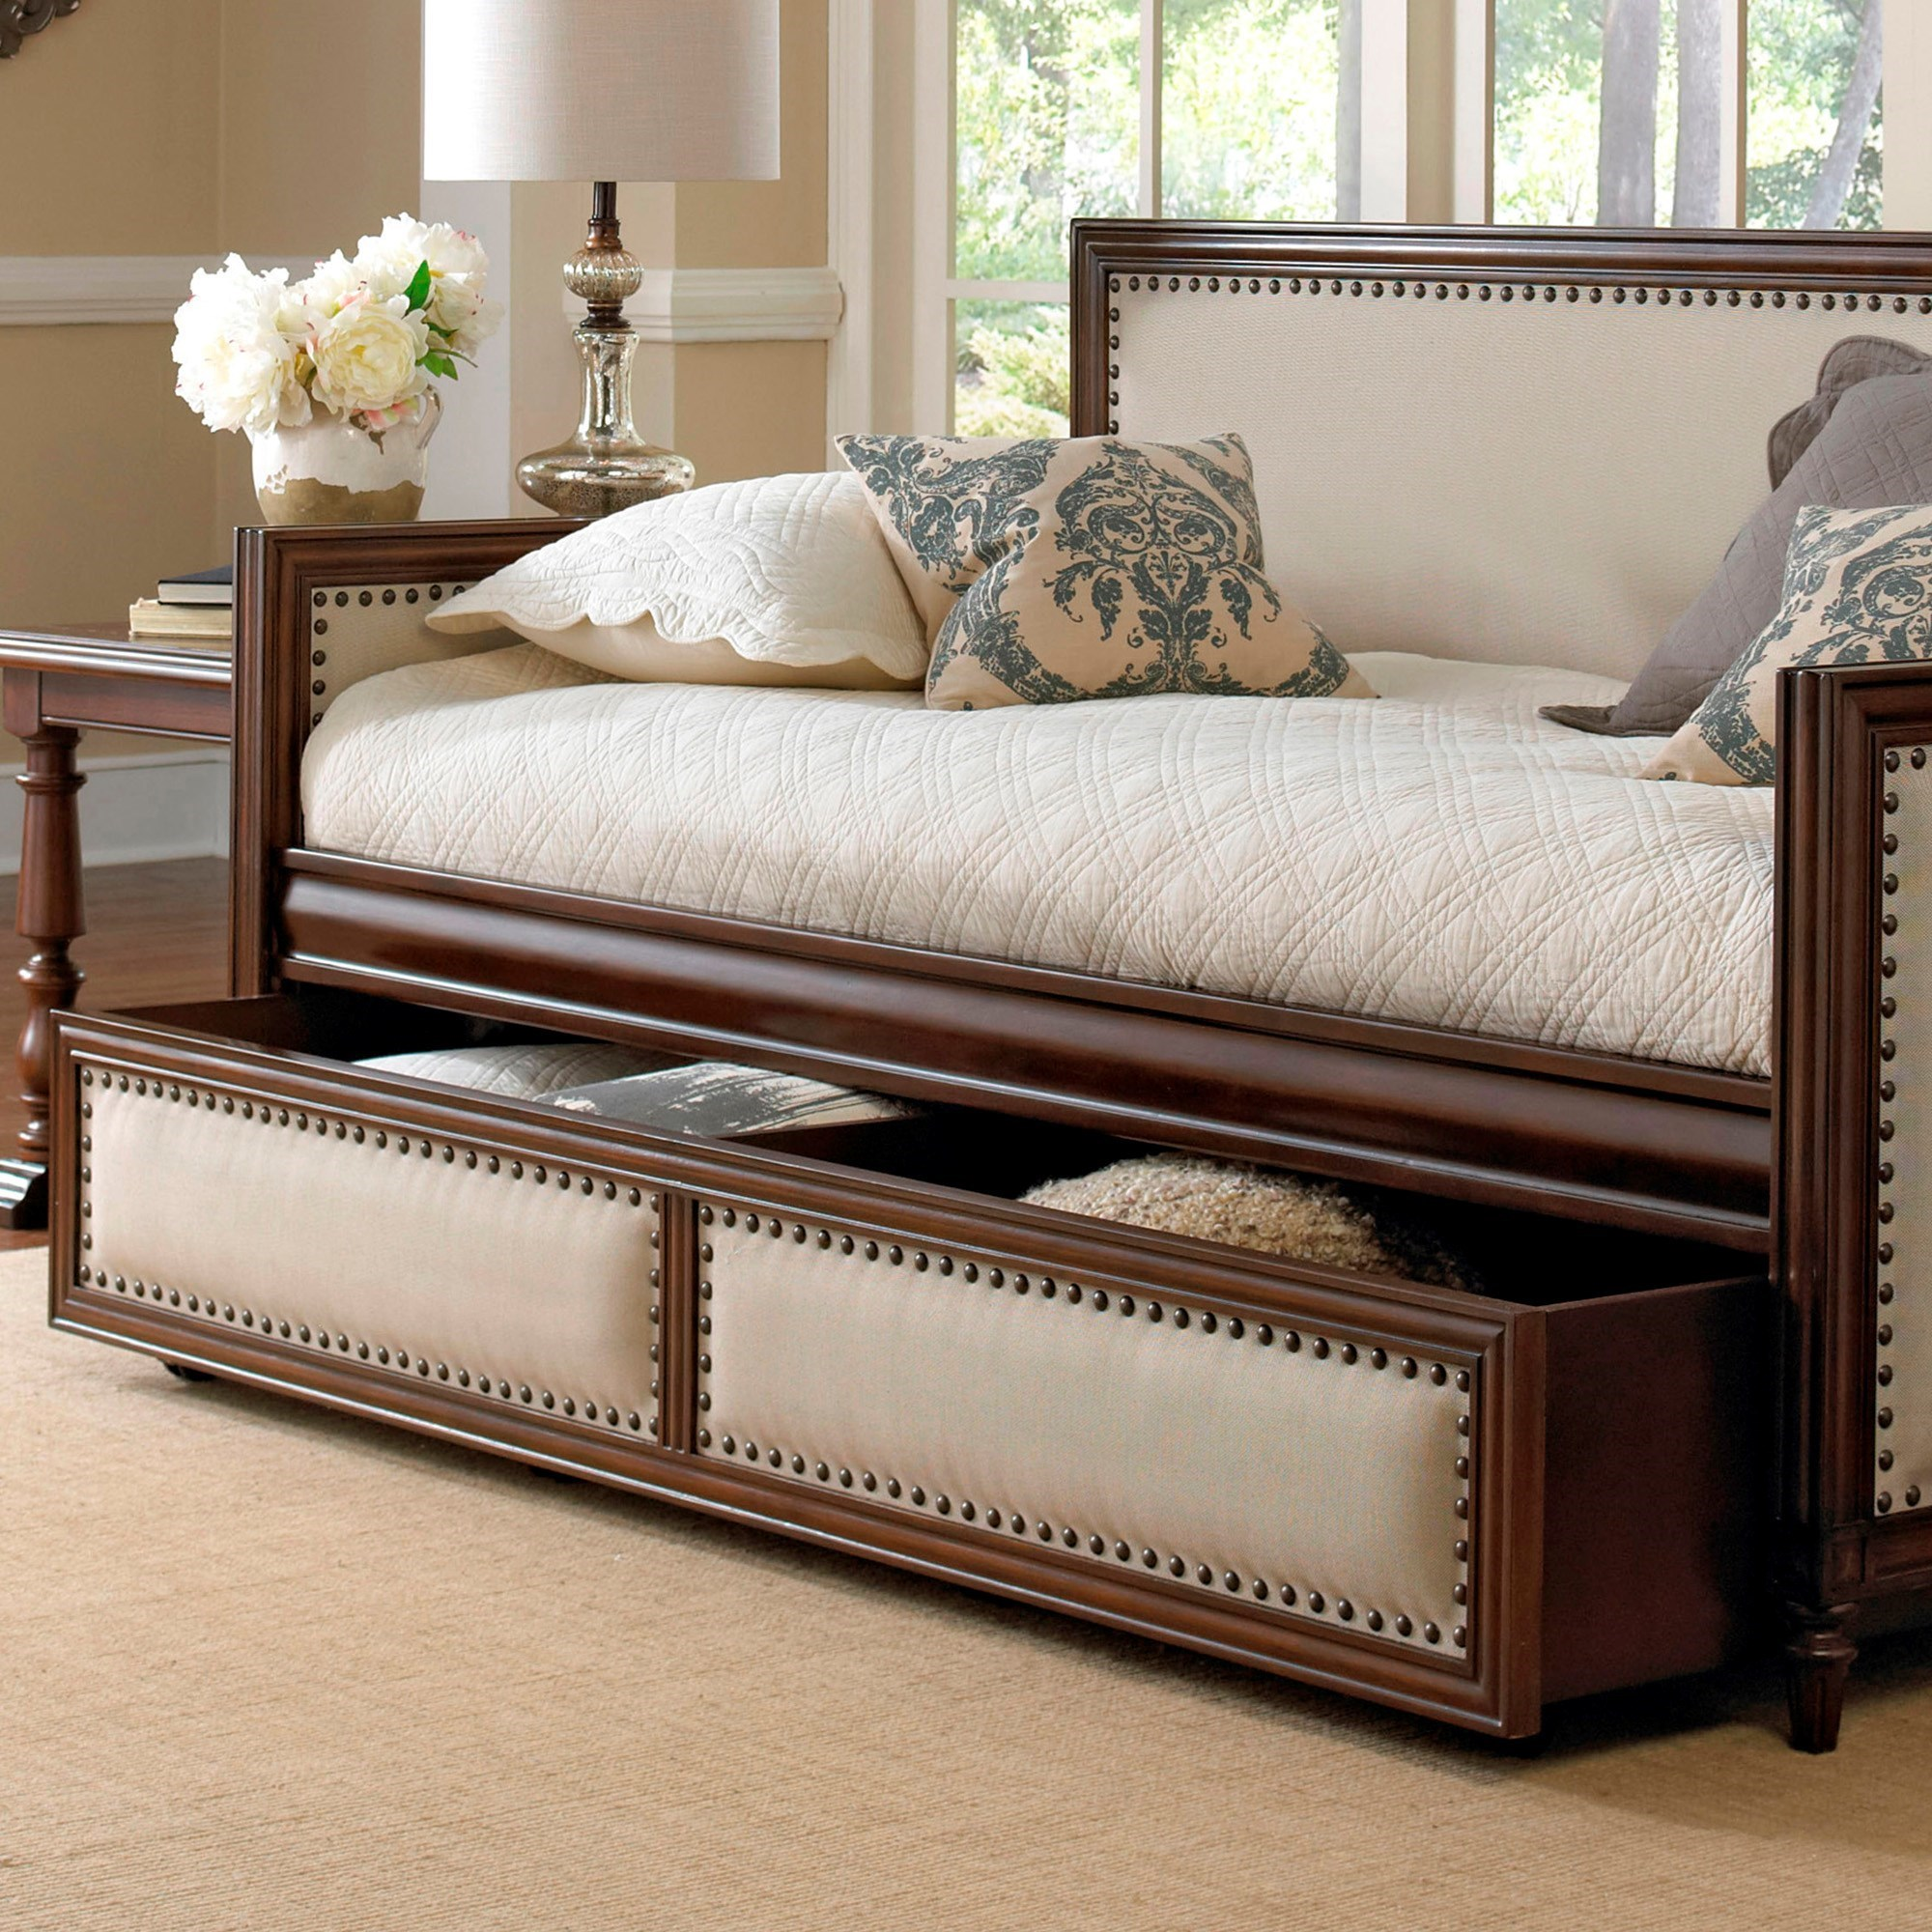 fashion bed group daybeds b50030 roll out wood trundle drawer for grandover daybed with espresso. Black Bedroom Furniture Sets. Home Design Ideas